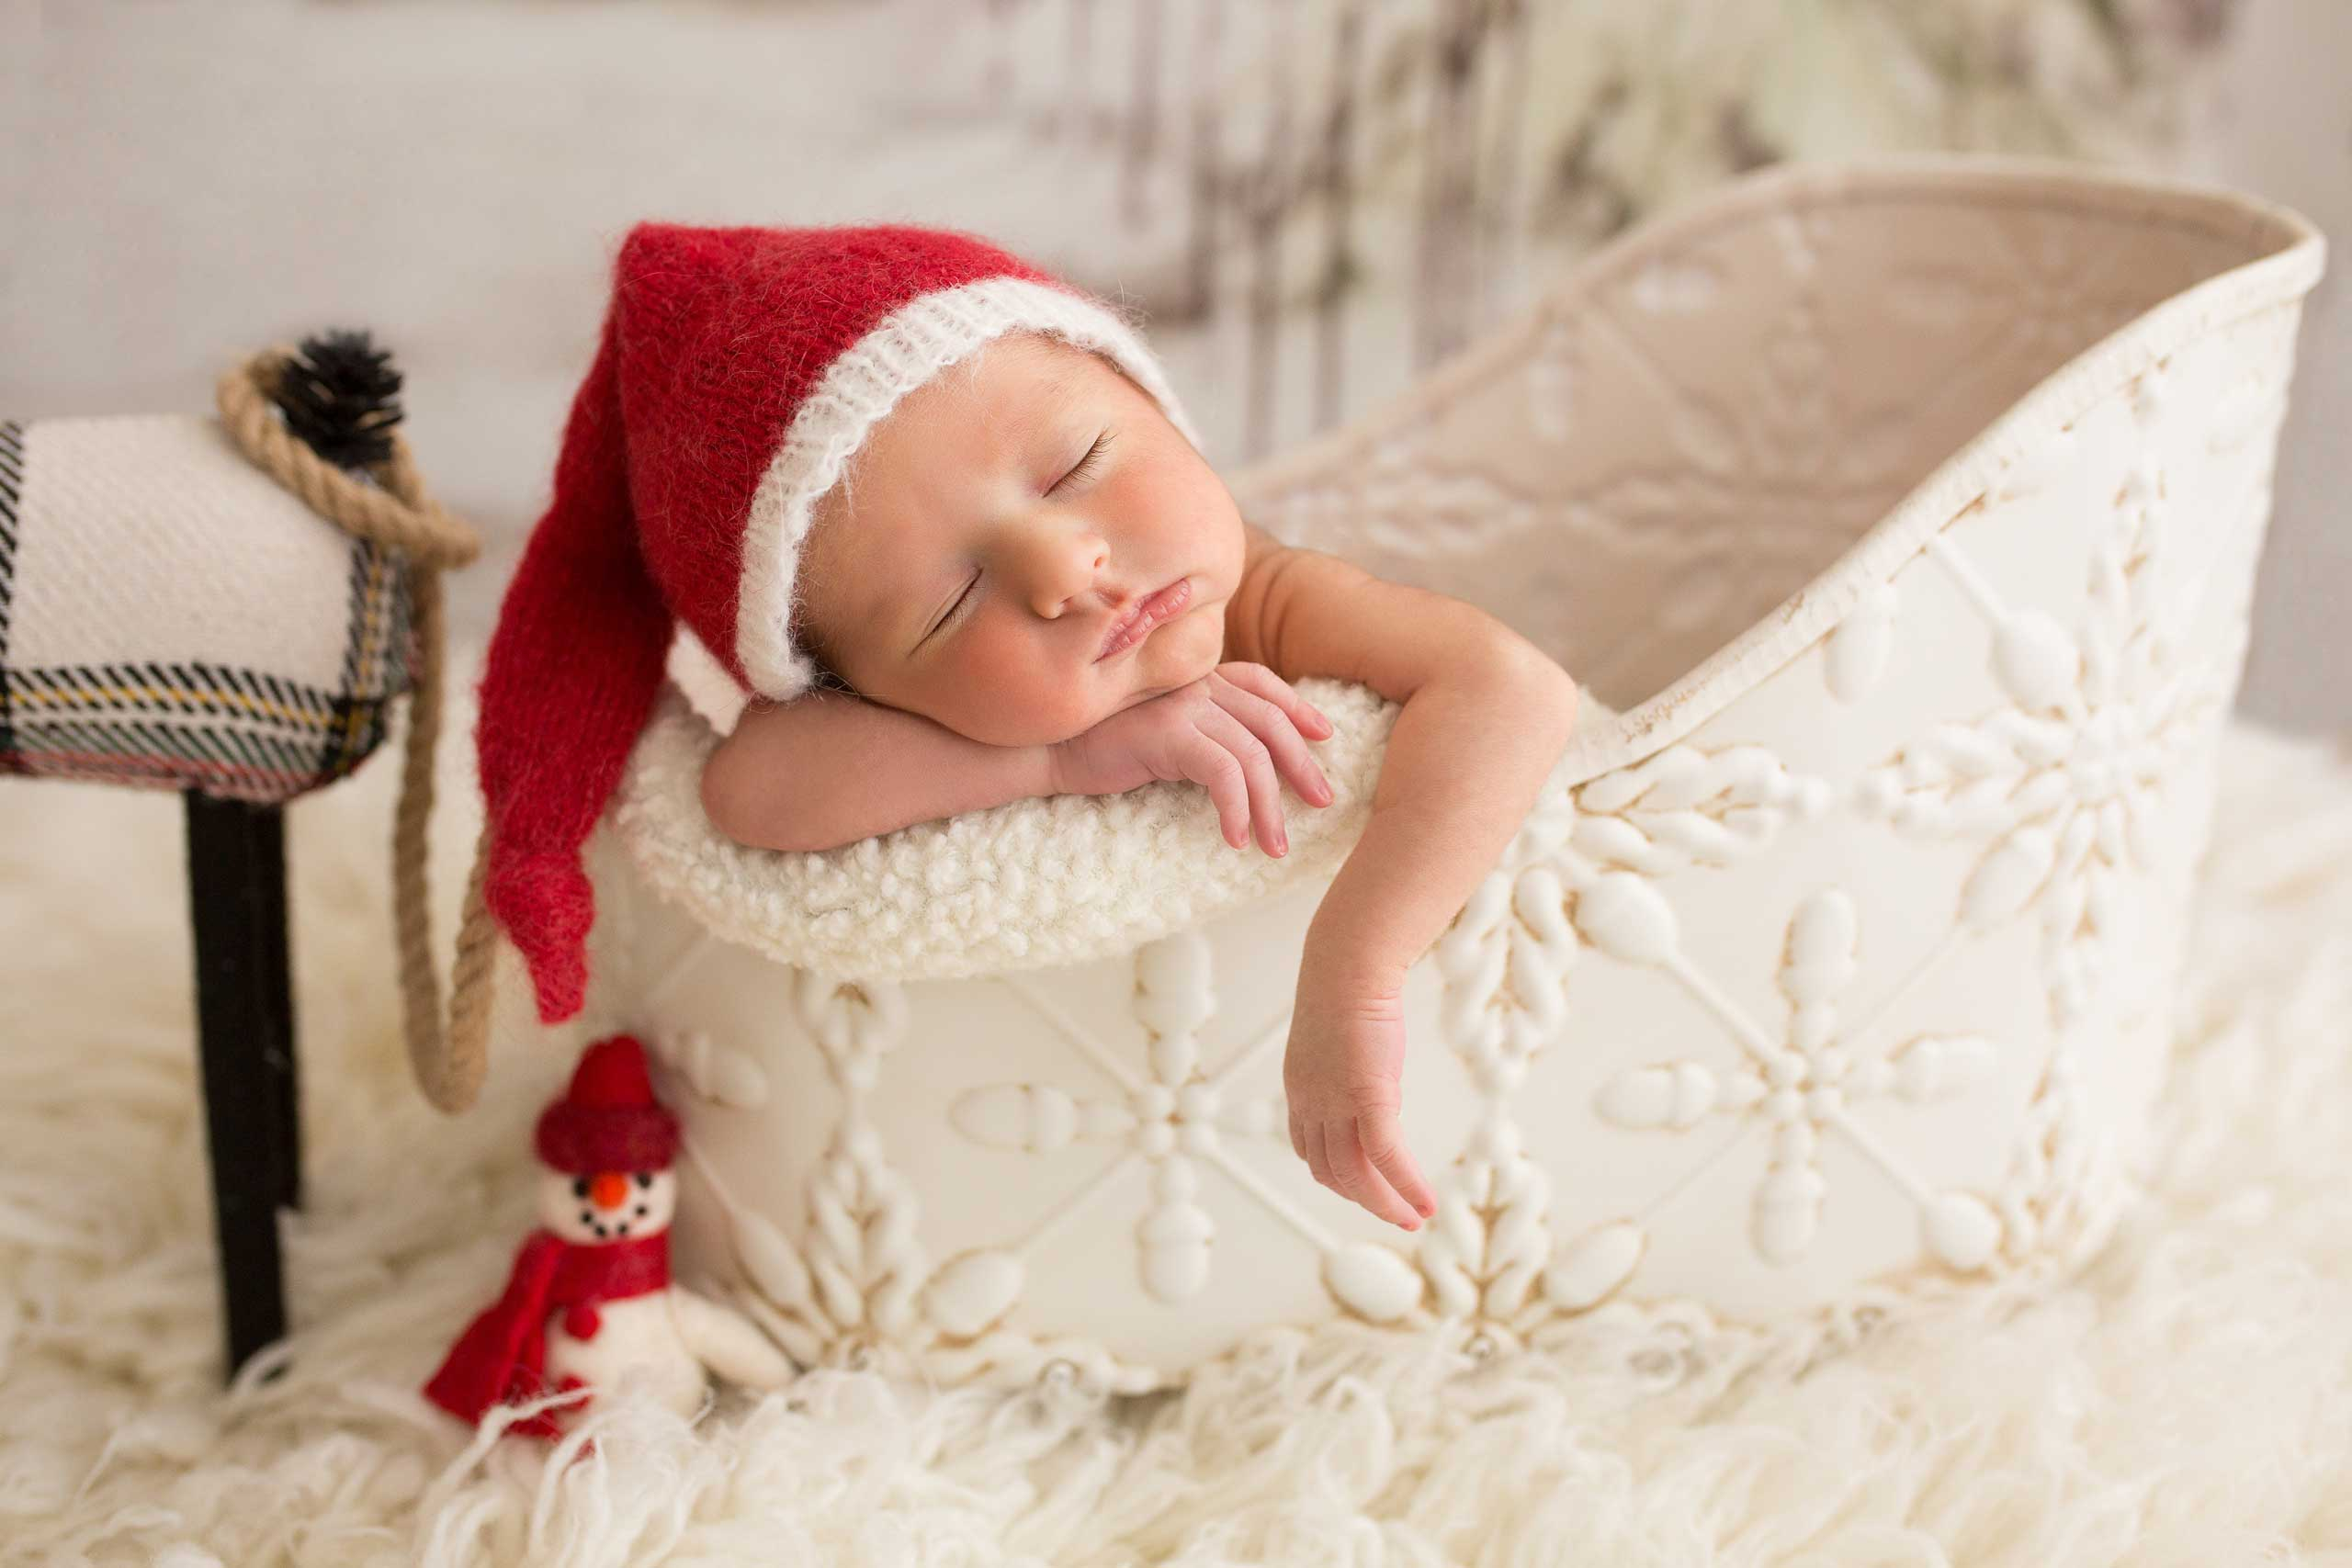 newborn Christmas photo session taken by Ramina Magid Photography in Los Angeles